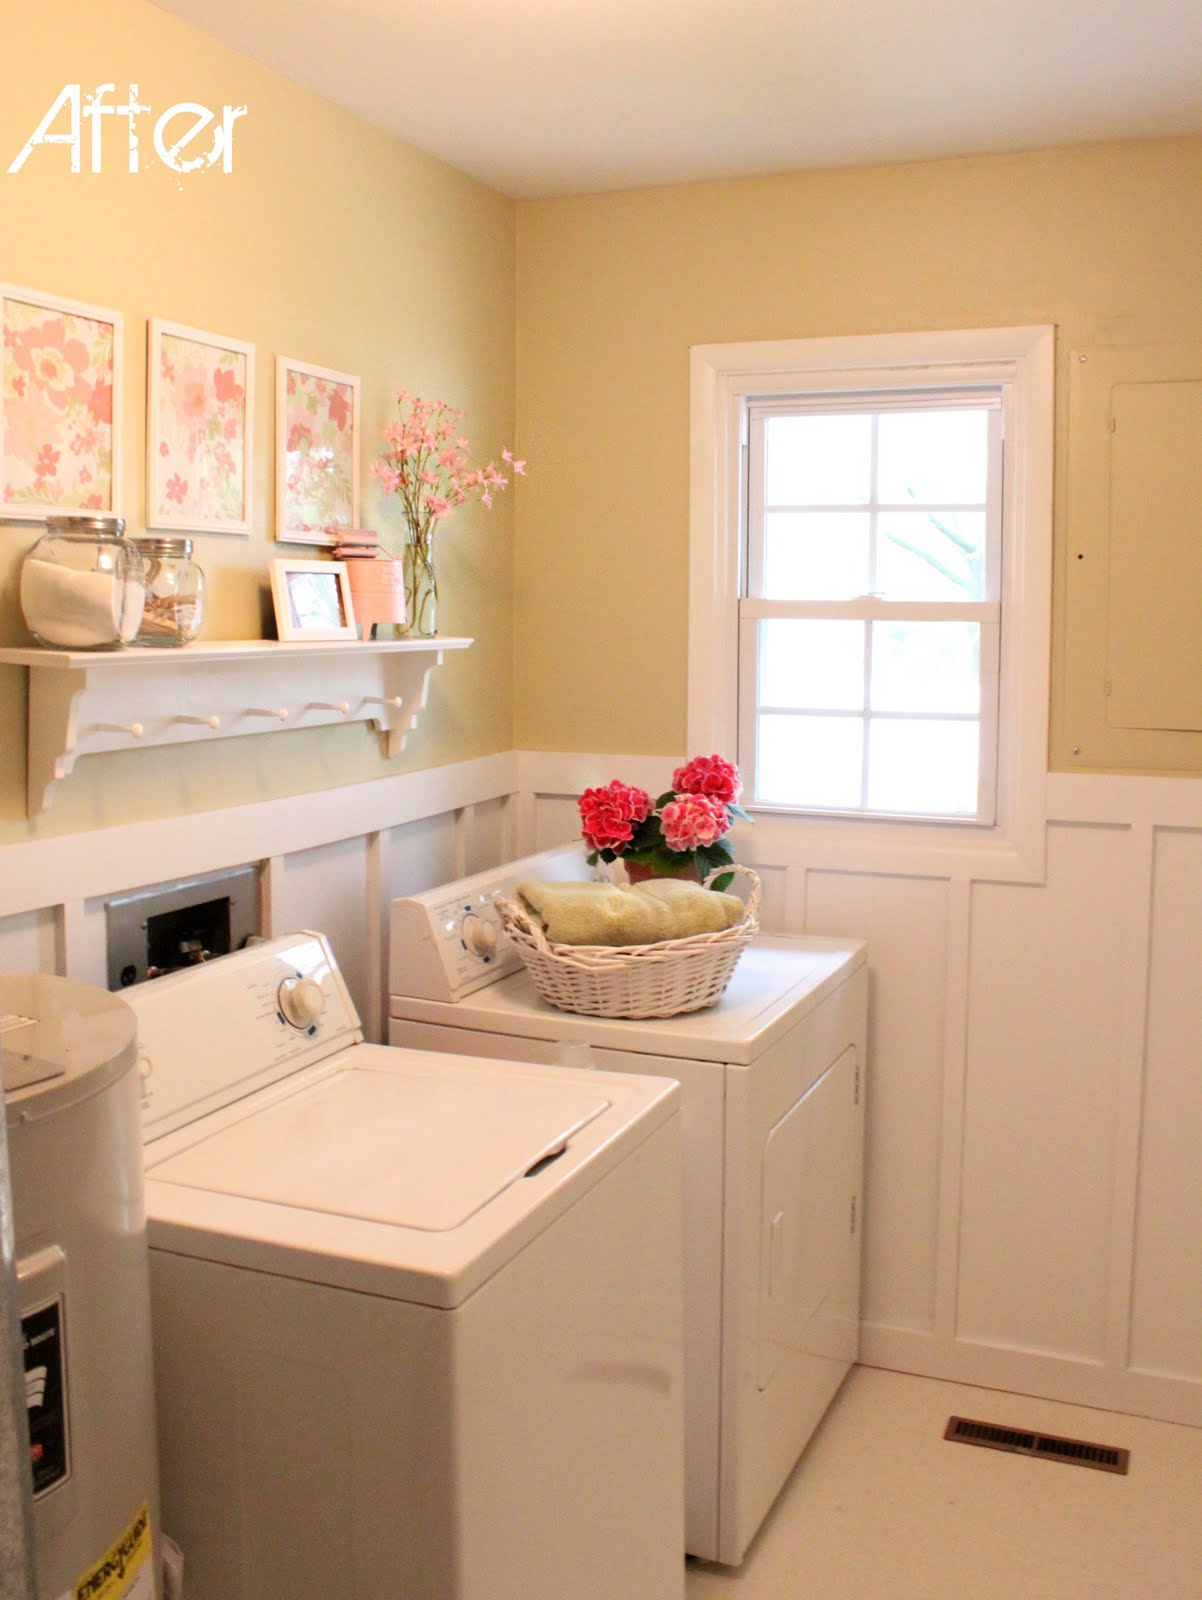 My Laundry Room Makeover...